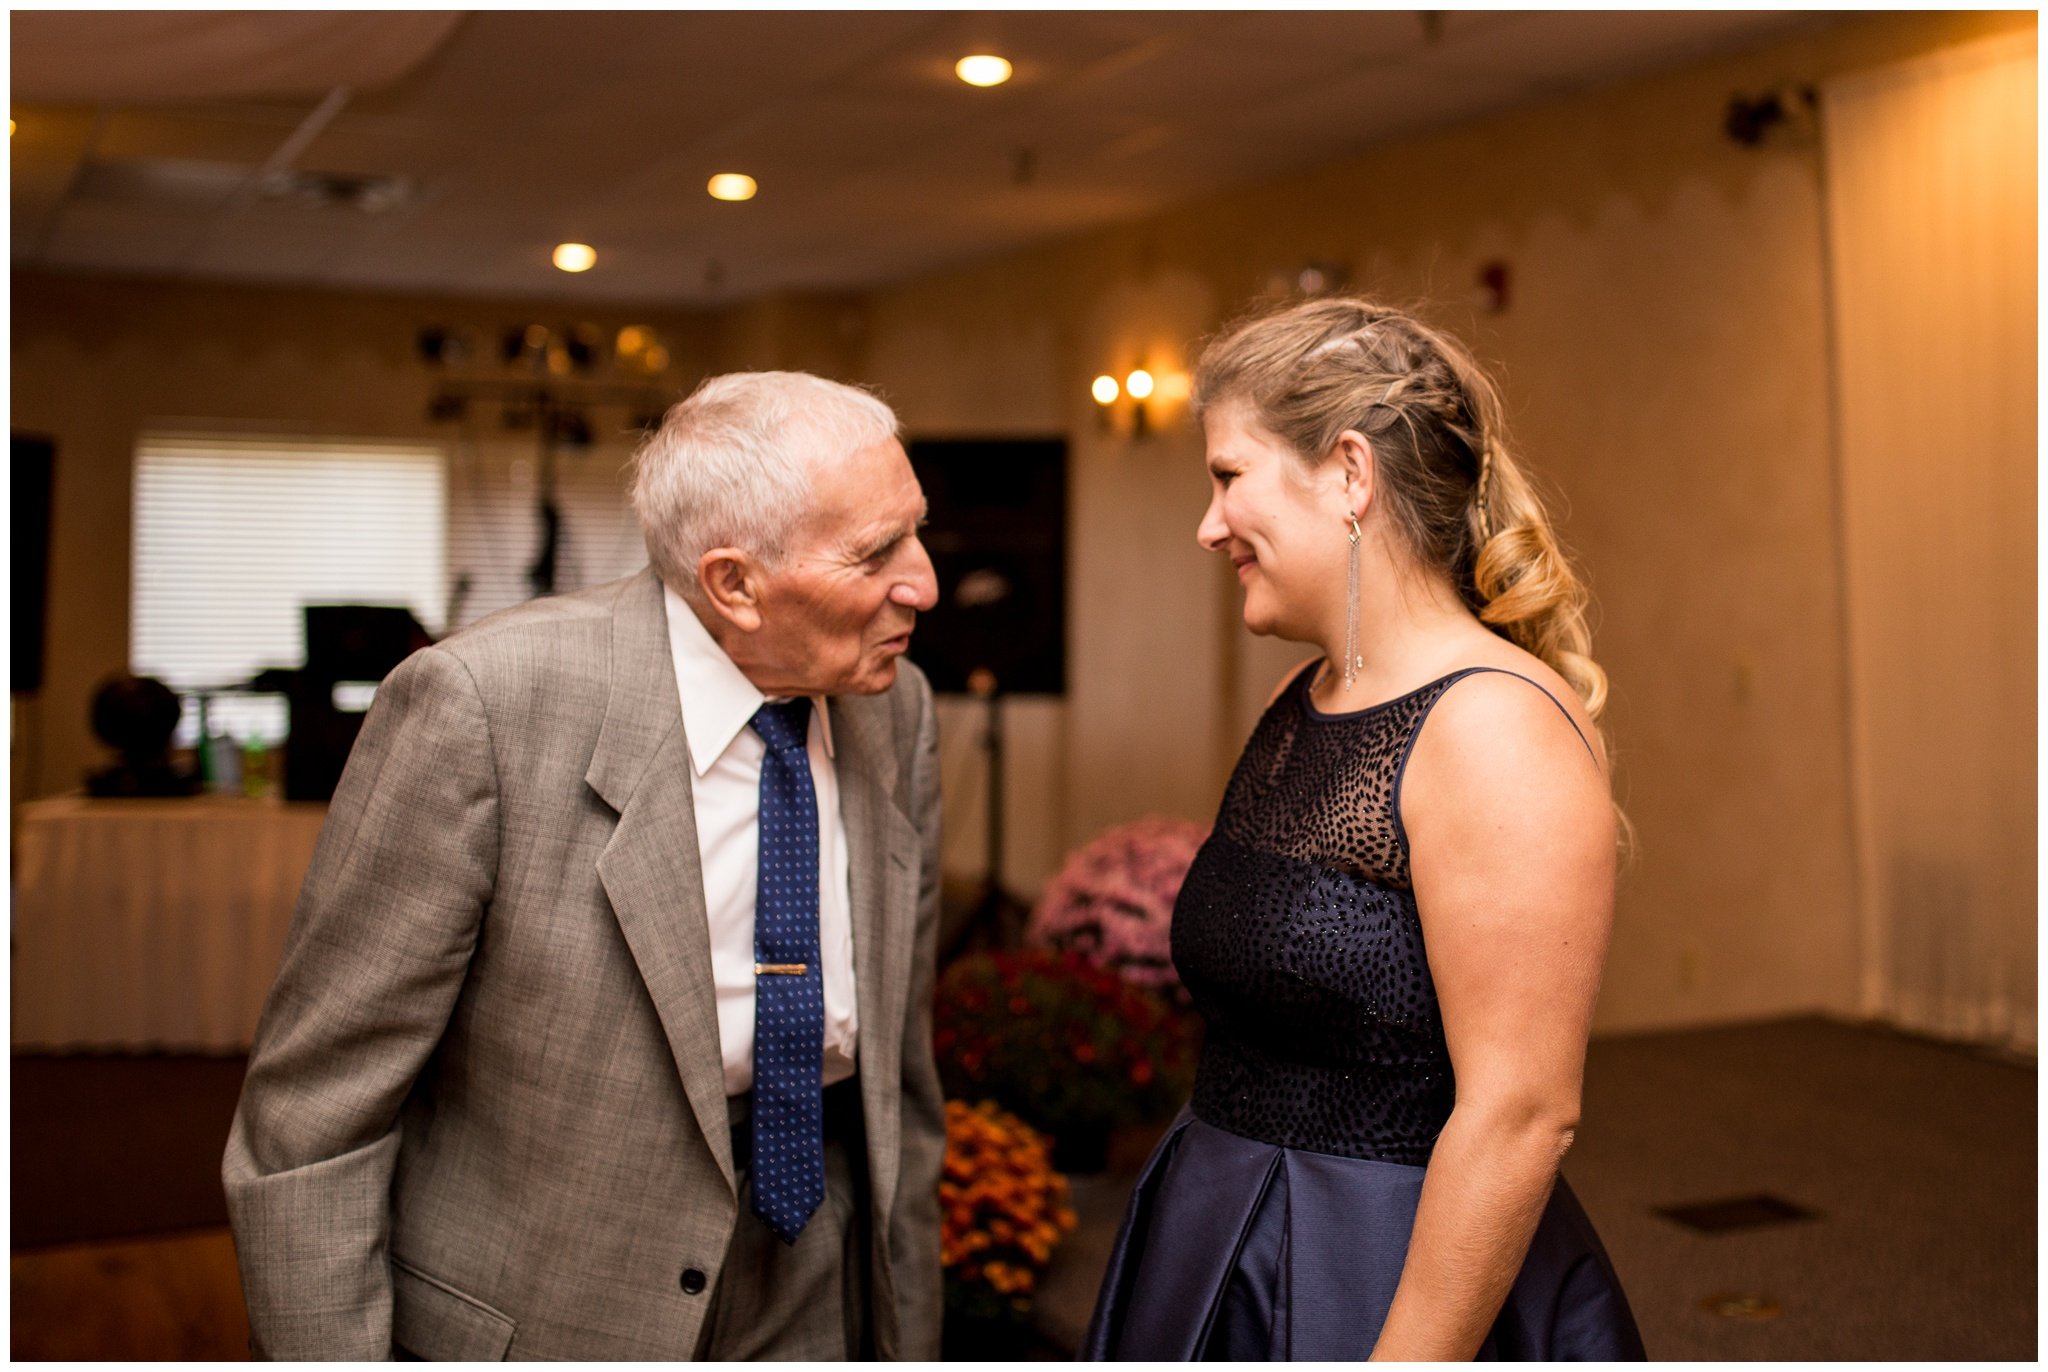 bride talking with grandfather before wedding ceremony at Romer's Catering in Greenville Ohio